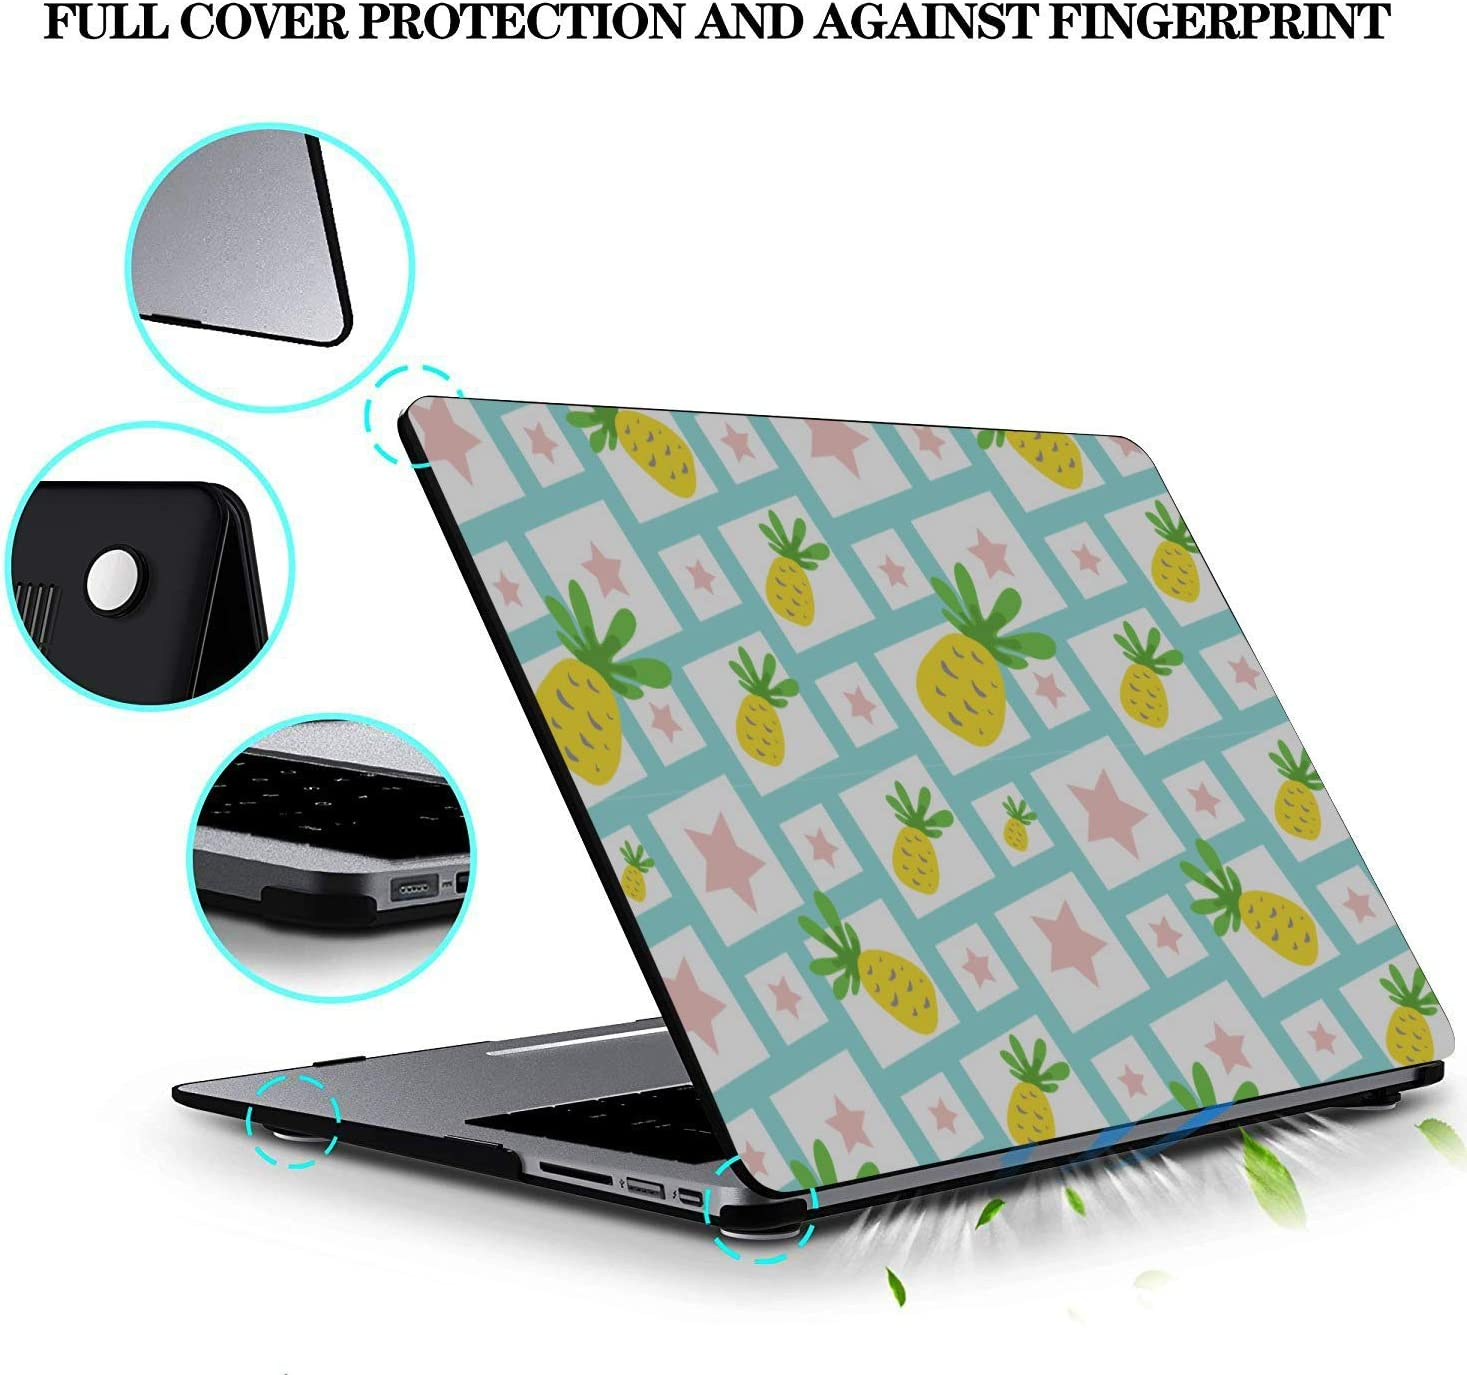 Case MacBook Pro Summer Fruit Cherry Blueberry Drink Plastic Hard Shell Compatible Mac Air 11 Pro 13 15 MacBook 13 Inch Case Protection for MacBook 2016-2019 Version